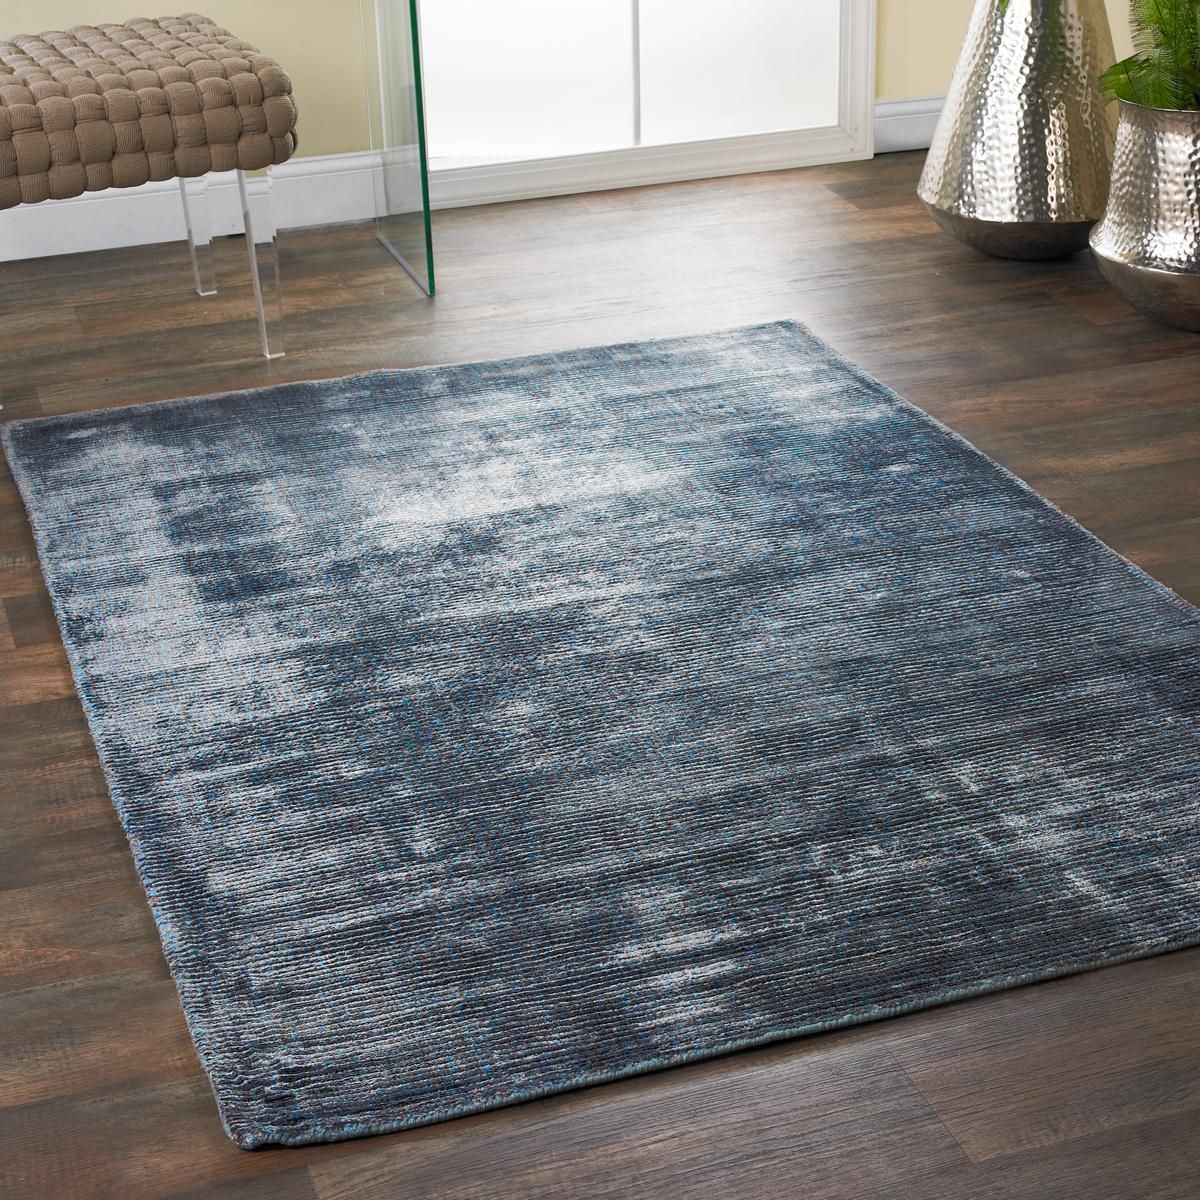 Luxurious Color Solid Rugs Silky Soft And Shimmering With Tones Of Solid Color These Area Rugs Are Luxurious Underfoot The Hand Loomed Solid Rugs Rugs Decor